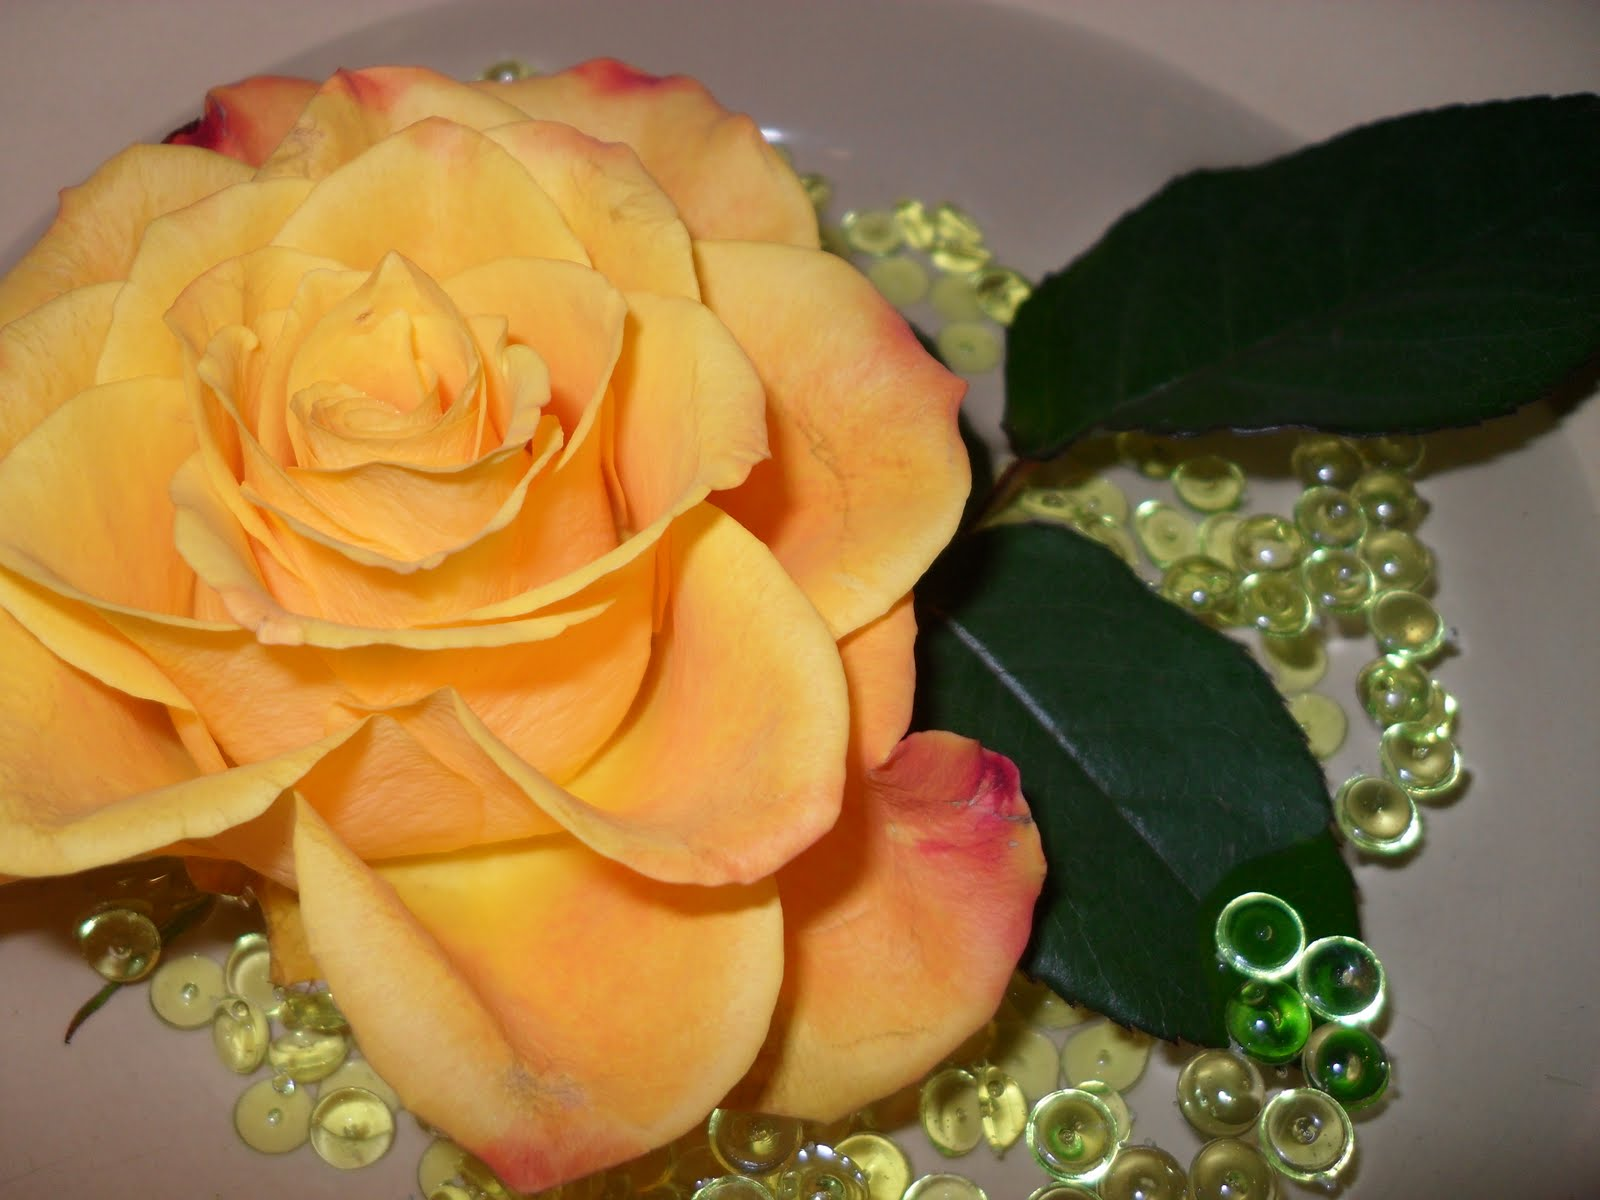 Beautiful flower wallpapers for you beautiful flowers - Peach rose wallpaper ...